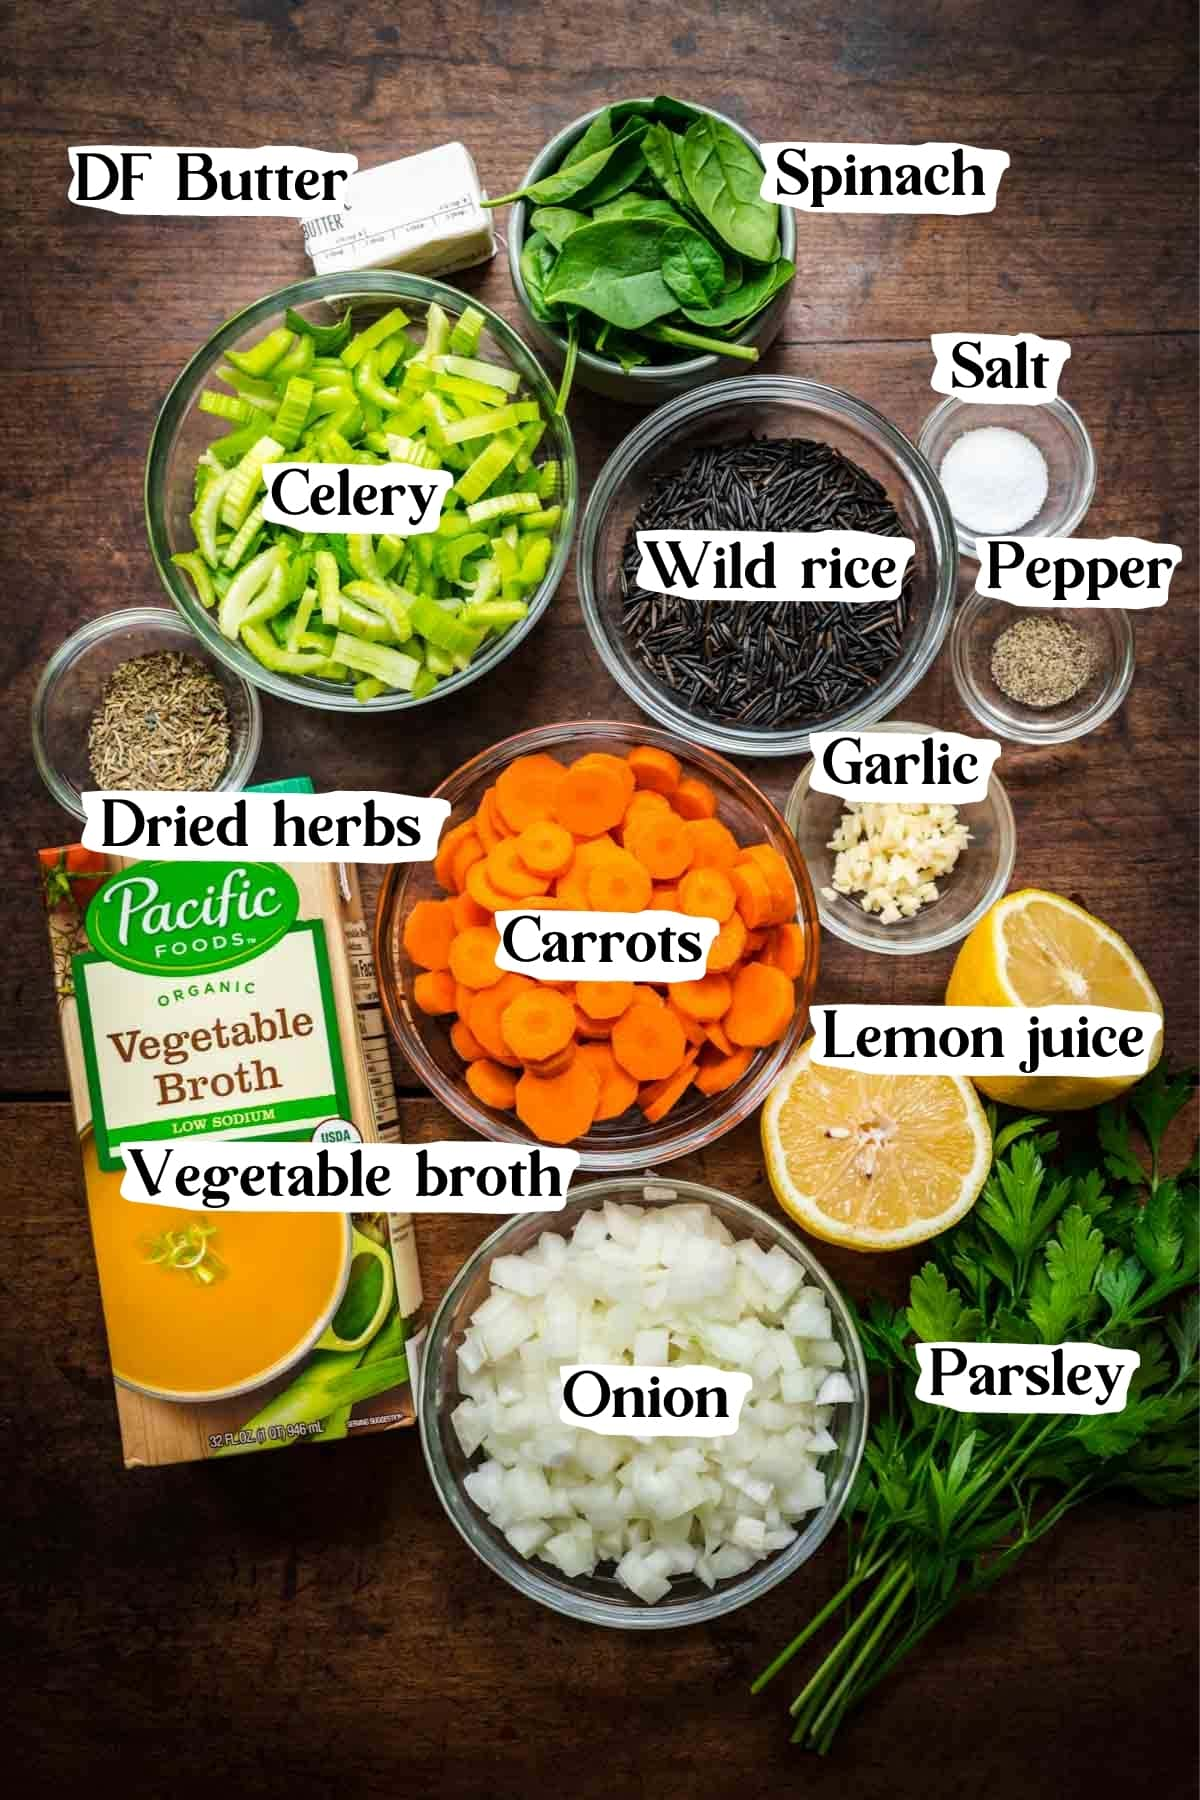 Overhead shot of wild rice soup ingredients, including carrots, celery, onions, and parsley.